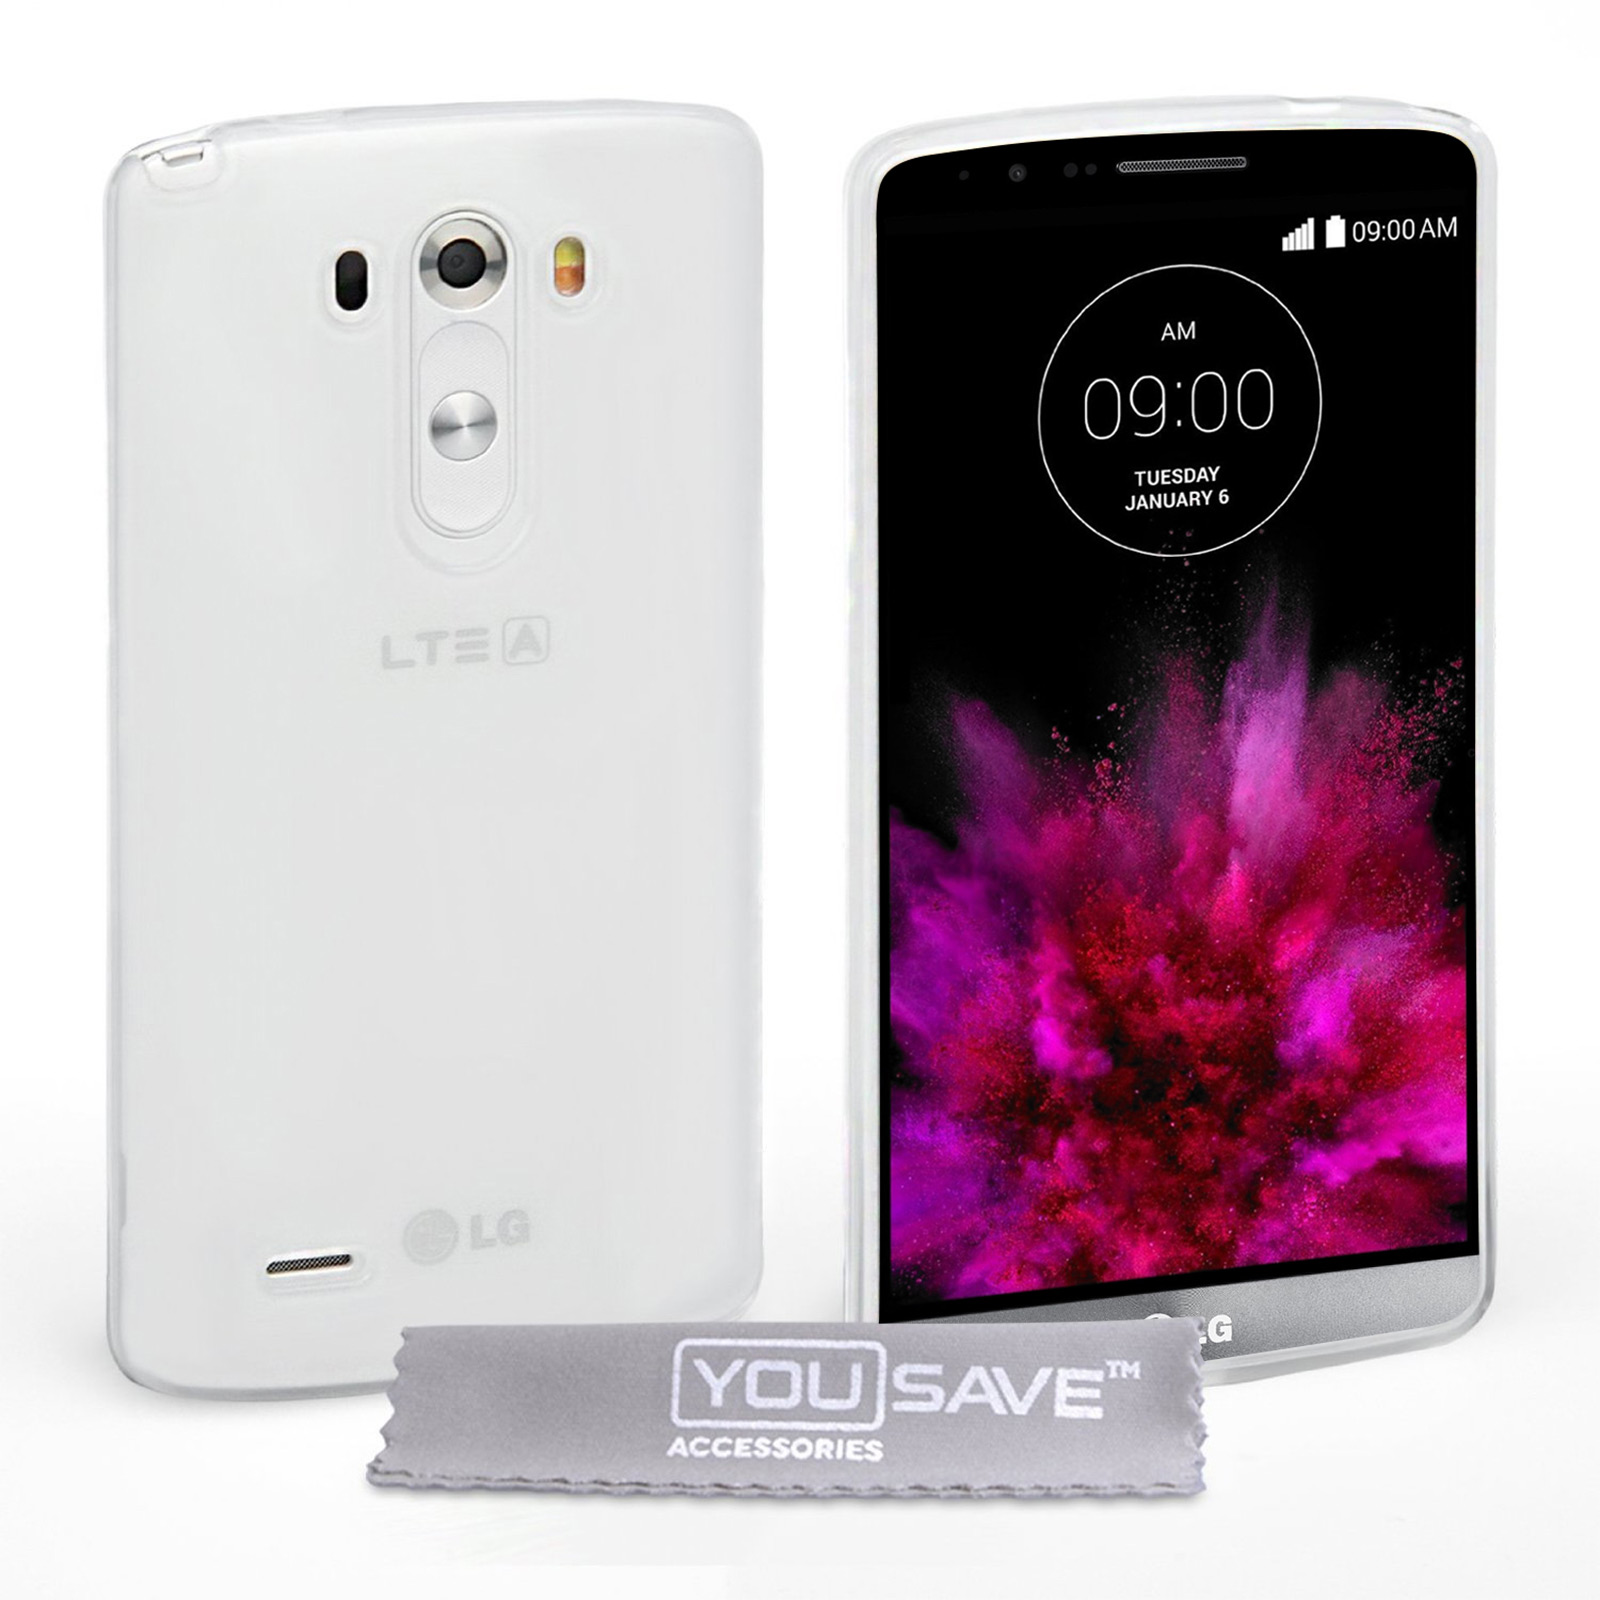 YouSave Accessories LG G4 Silicone Gel Case - Clear